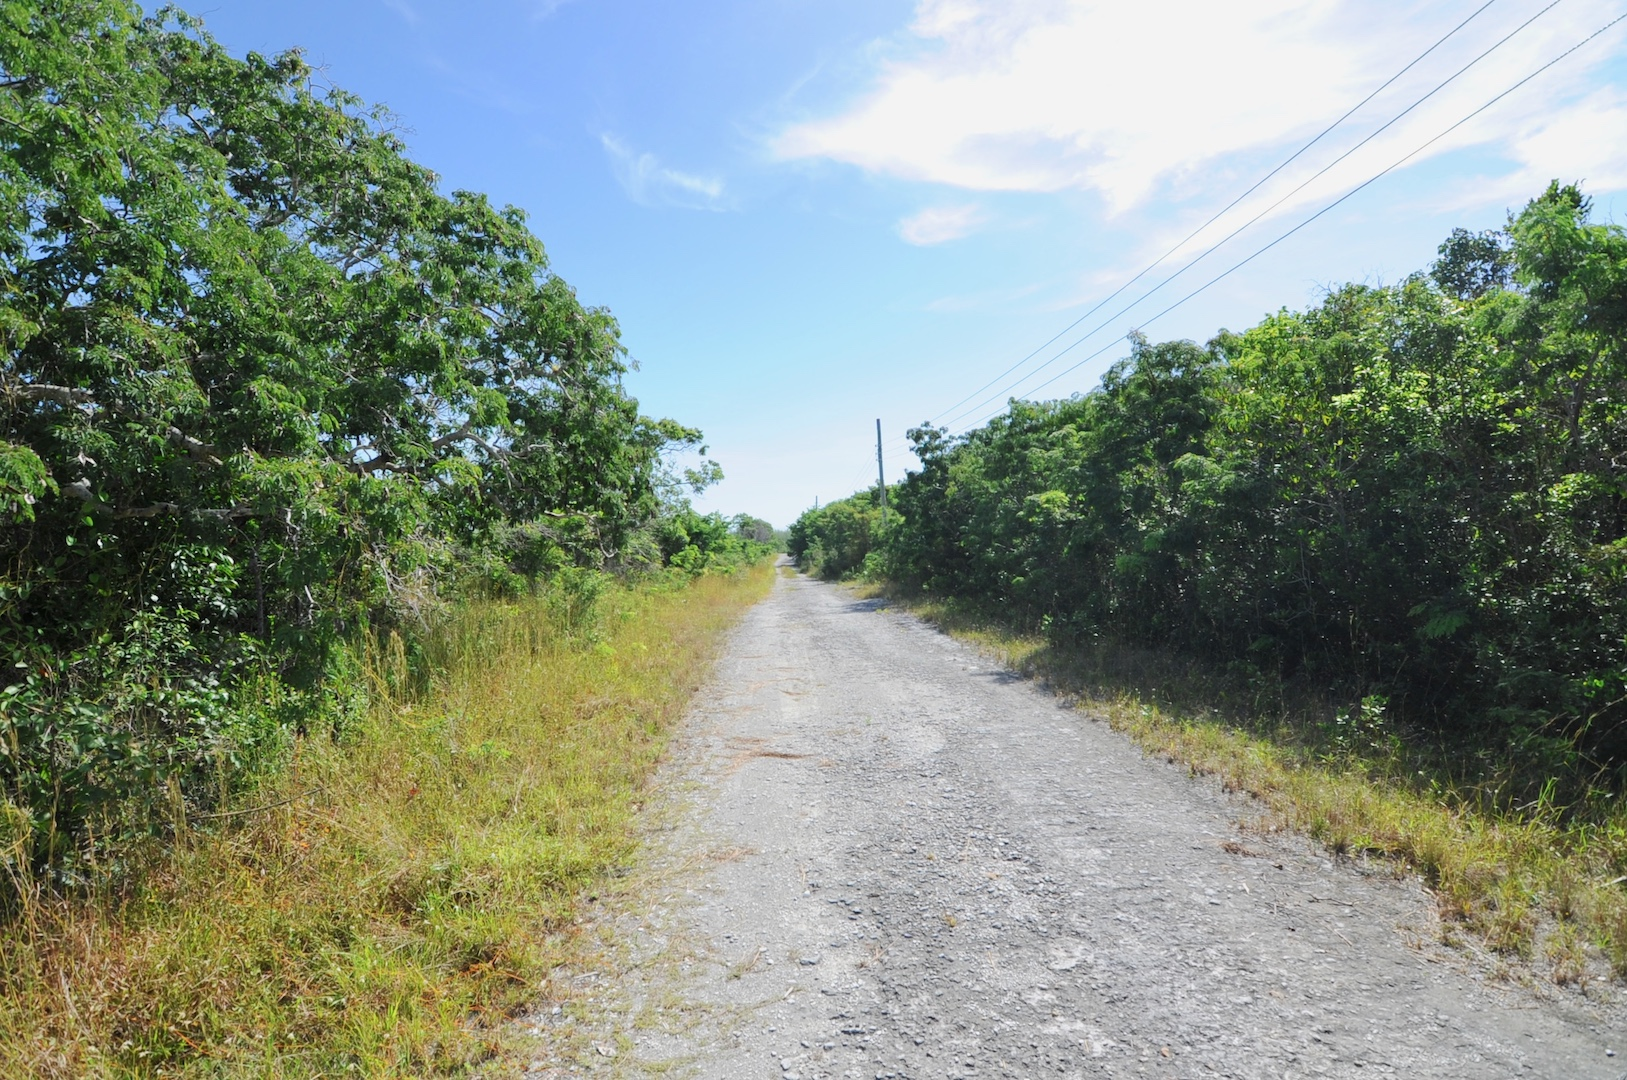 Property for sale in Bahama Palm Shores just 5 minutes from the 8 mile beach